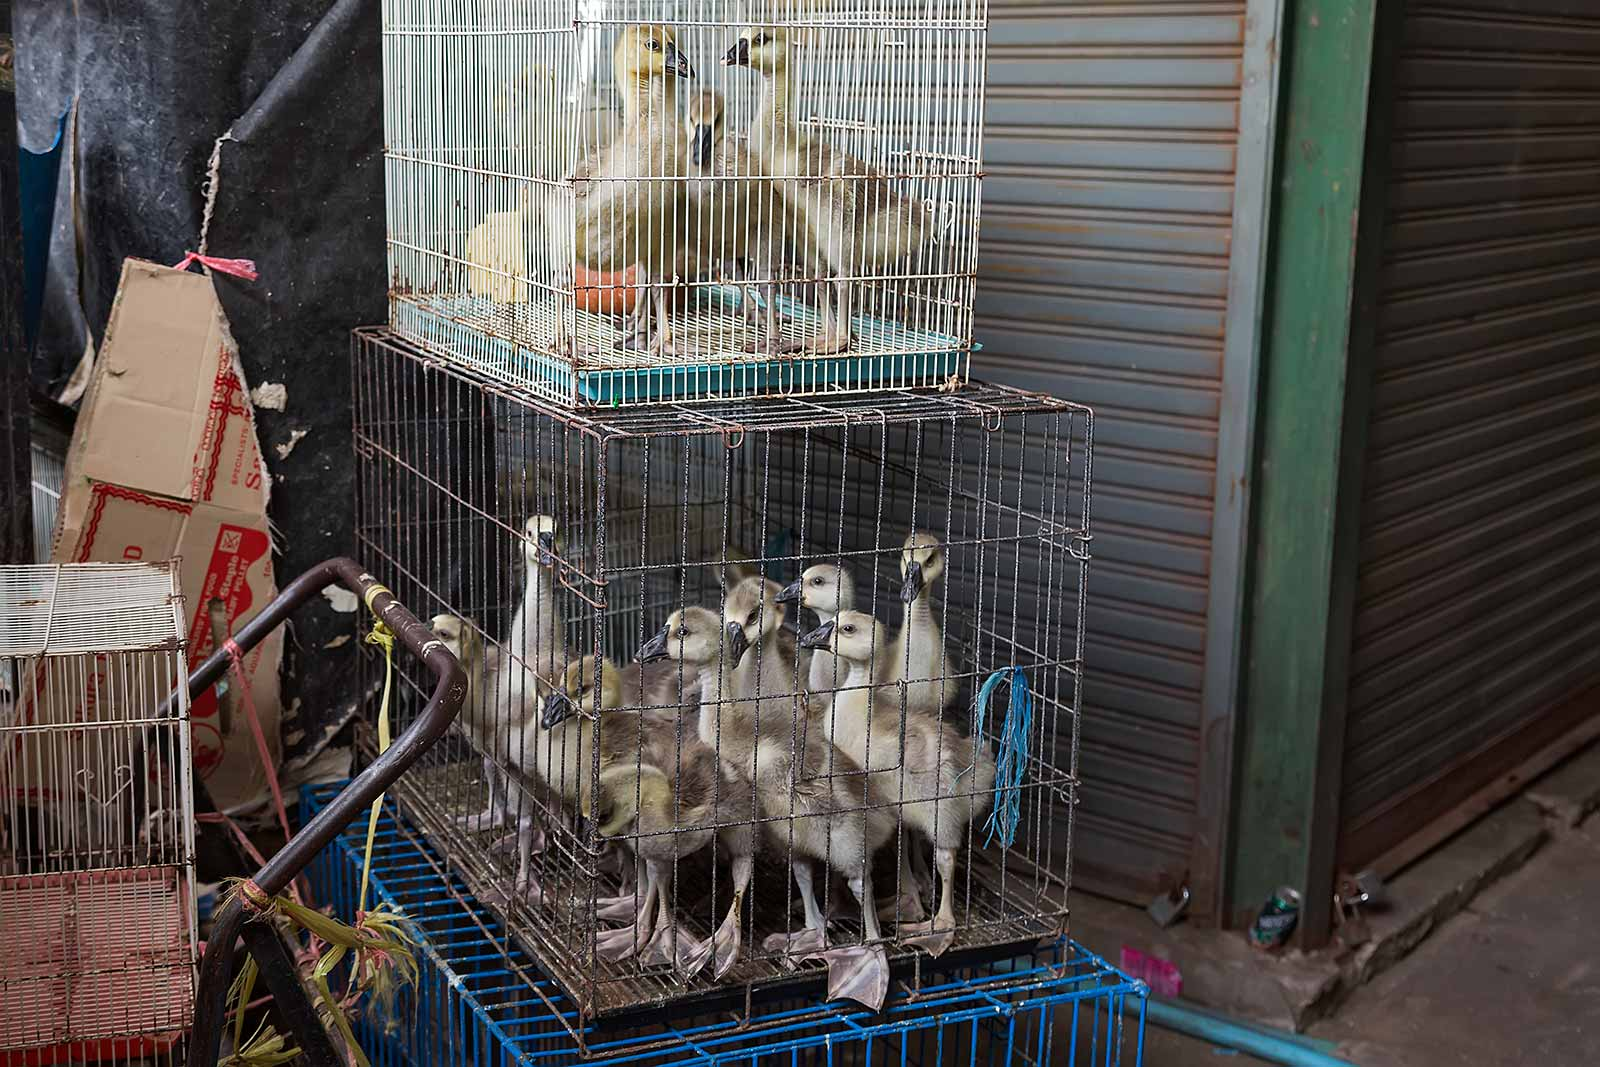 chatuchak-market-ducks-cage-pet-section-bangkok-thailand